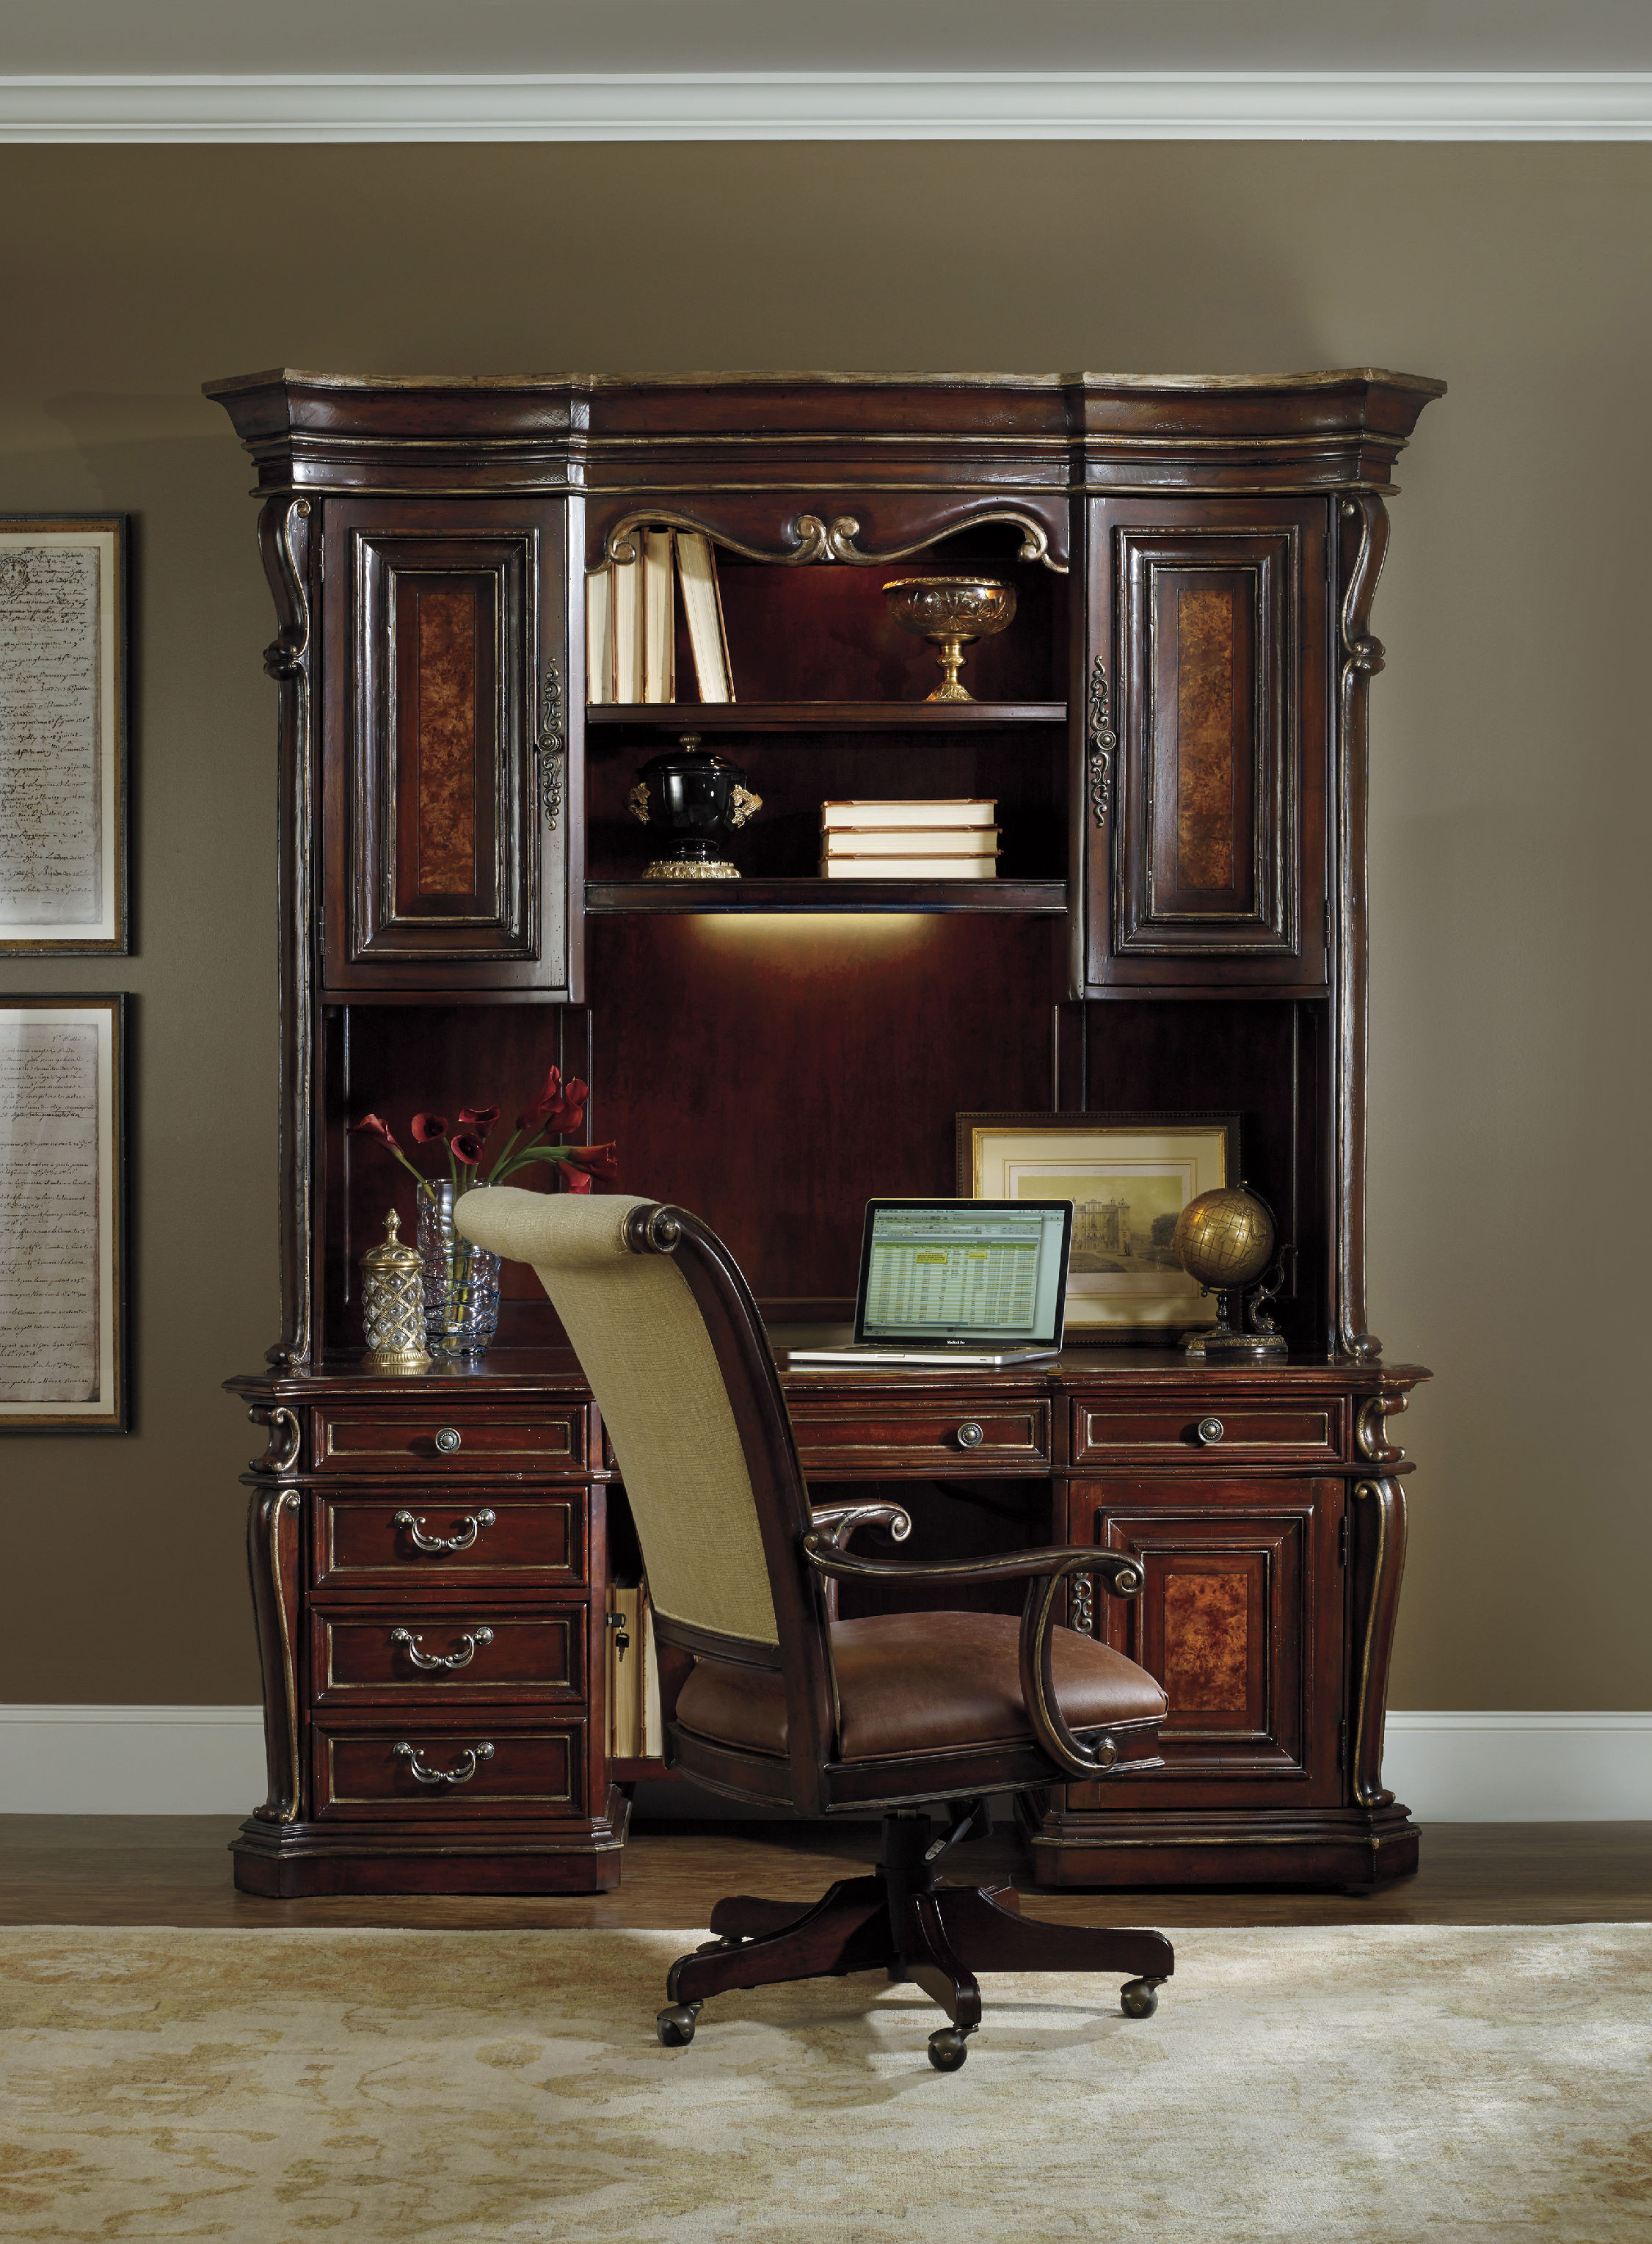 Best ideas about Hooker Office Furniture . Save or Pin Hooker Furniture Home fice Grand Palais Tilt Swivel Now.